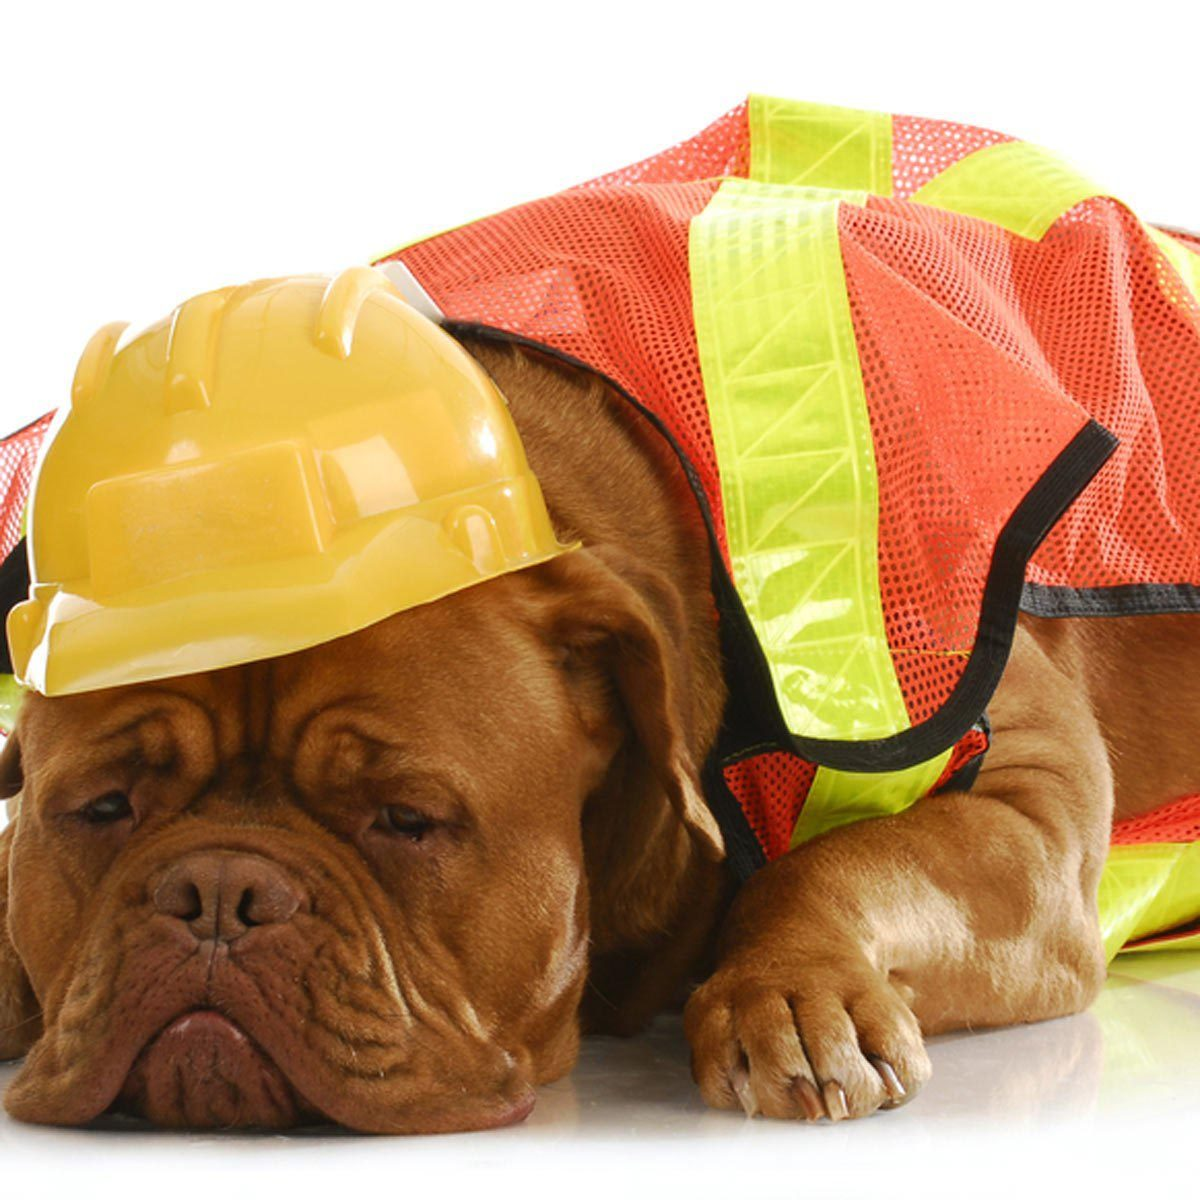 Dog picture: hard to spend nights watching a construction site.